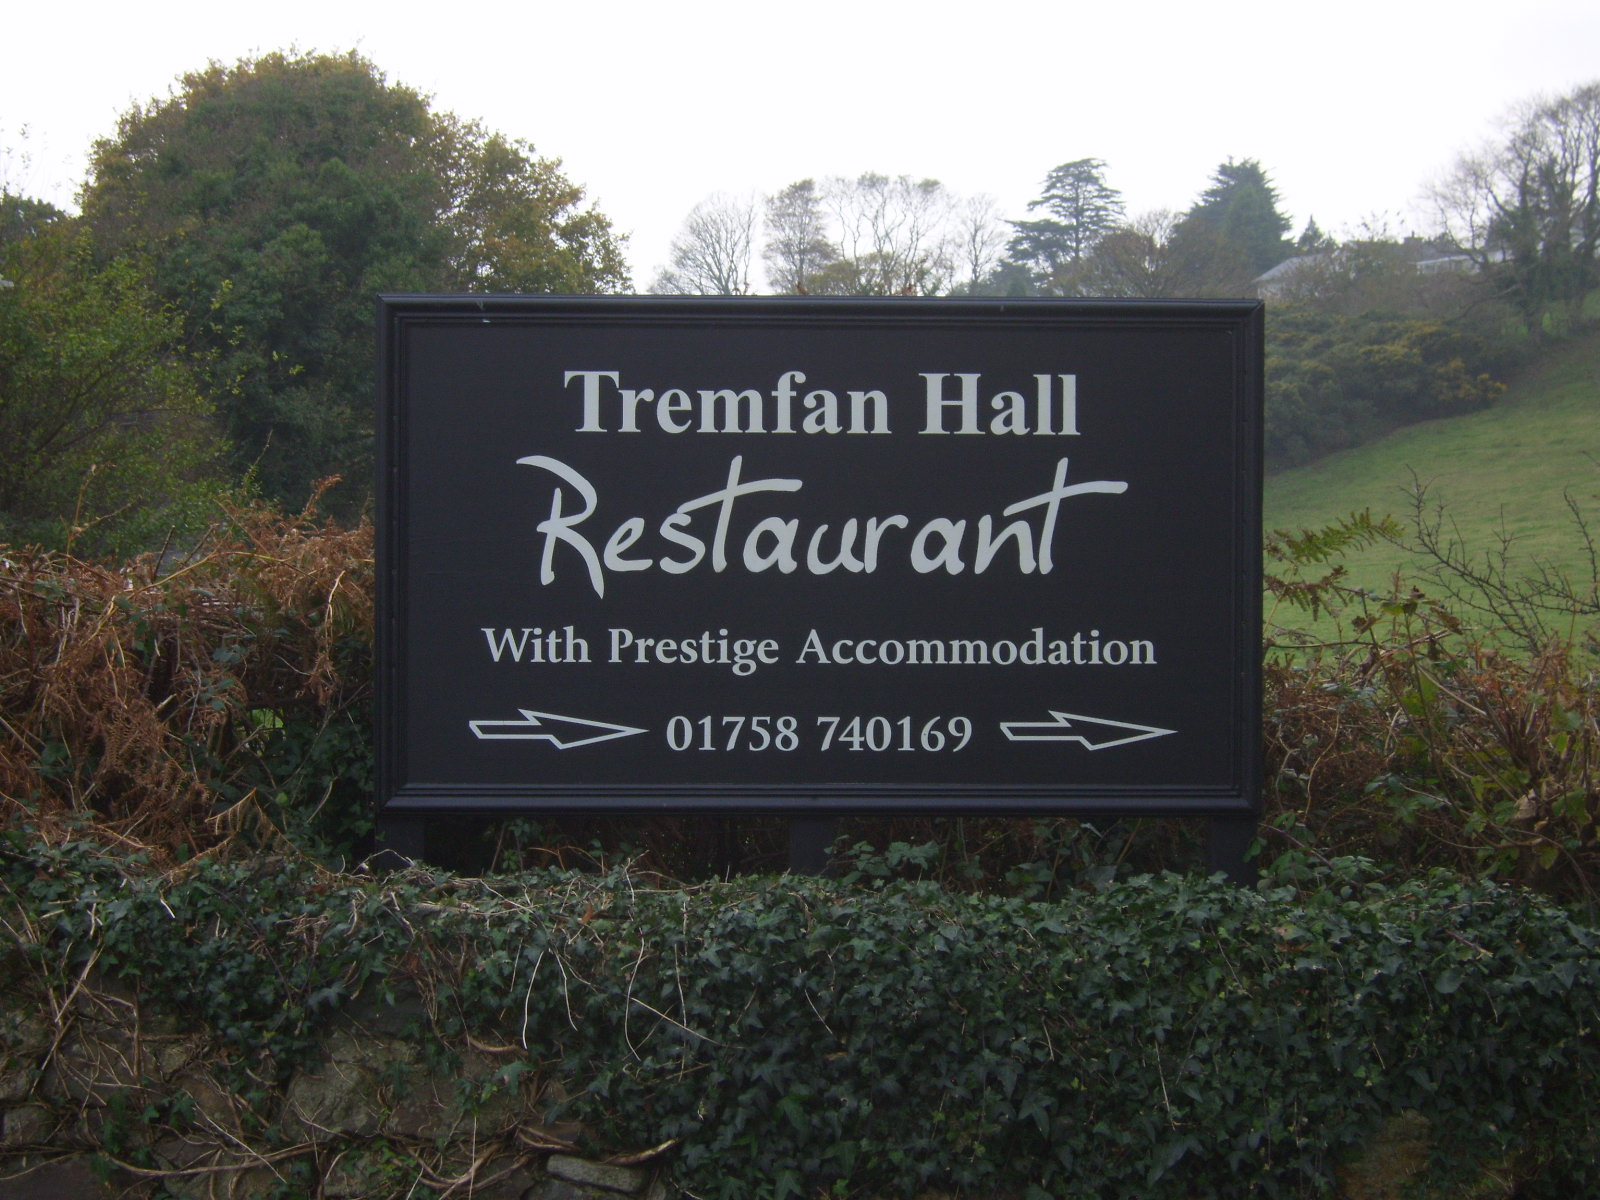 Tremfan Hall Restaurant